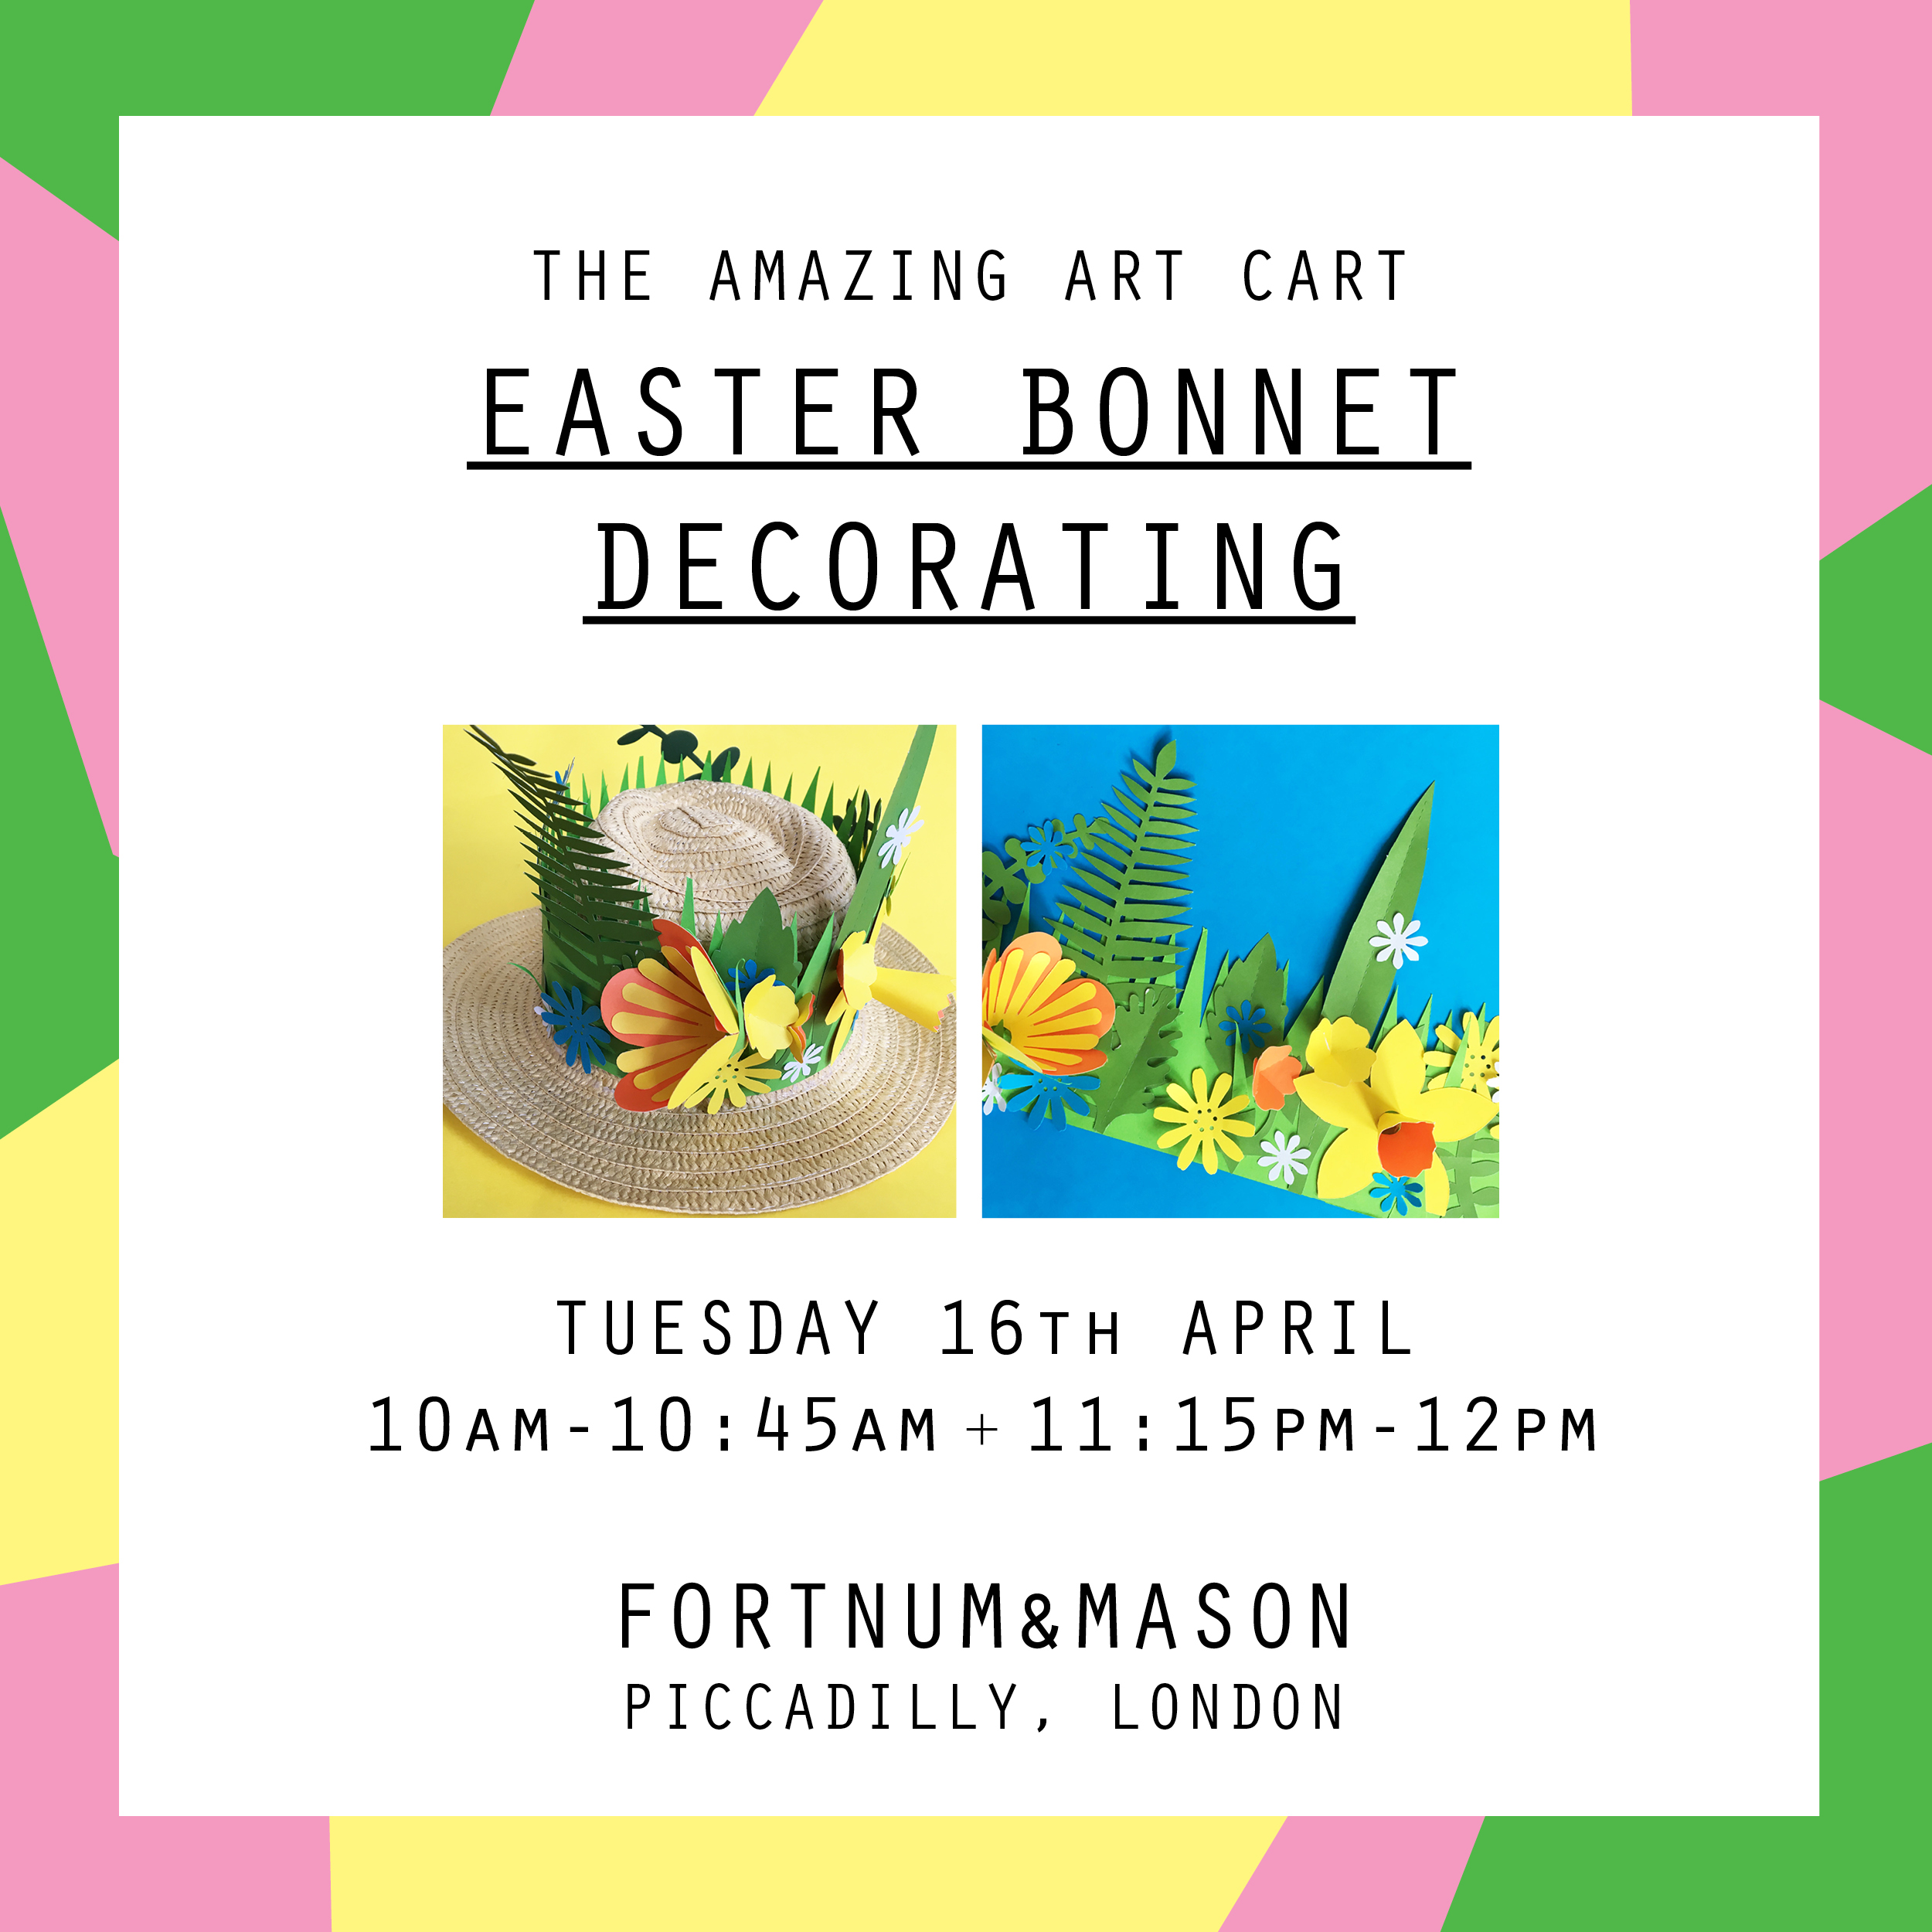 This Easter holiday, children aged 5-12 are invited to Fortnum's to join The Amazing Art Cart to create their own Easter Bonnet in colourful fashion, just in time for the Easter celebrations.  Places are limited to 16 per class, and participating children must be aged 5+. Children up to the age of 8 must be accompanied by an adult, while children aged 9 and over may be left unattended, but parents must remain in store while the workshop is running.